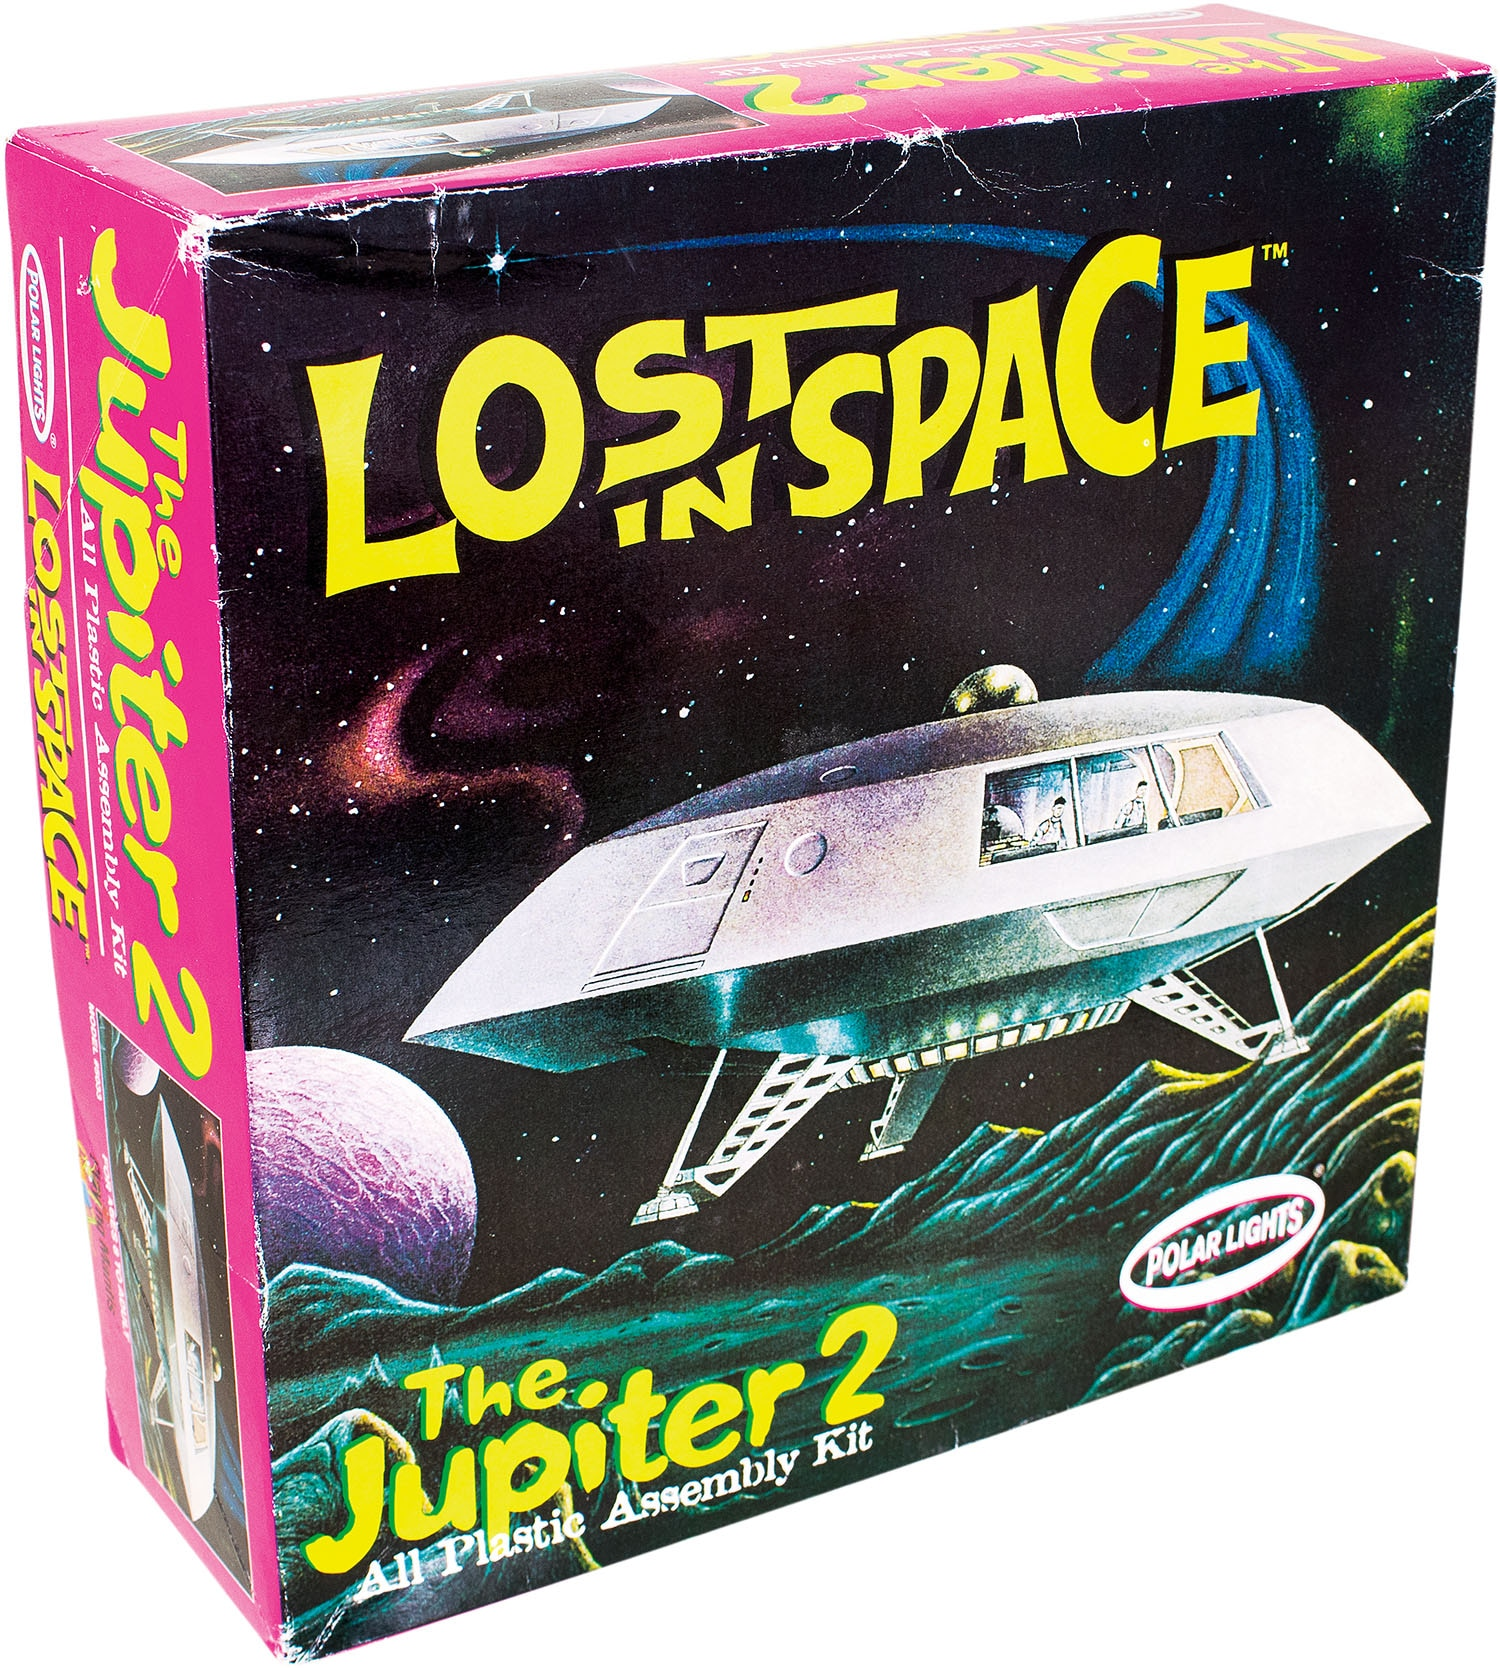 LOST IN SPACE The Jupiter2 All Plastic Assembly Kit